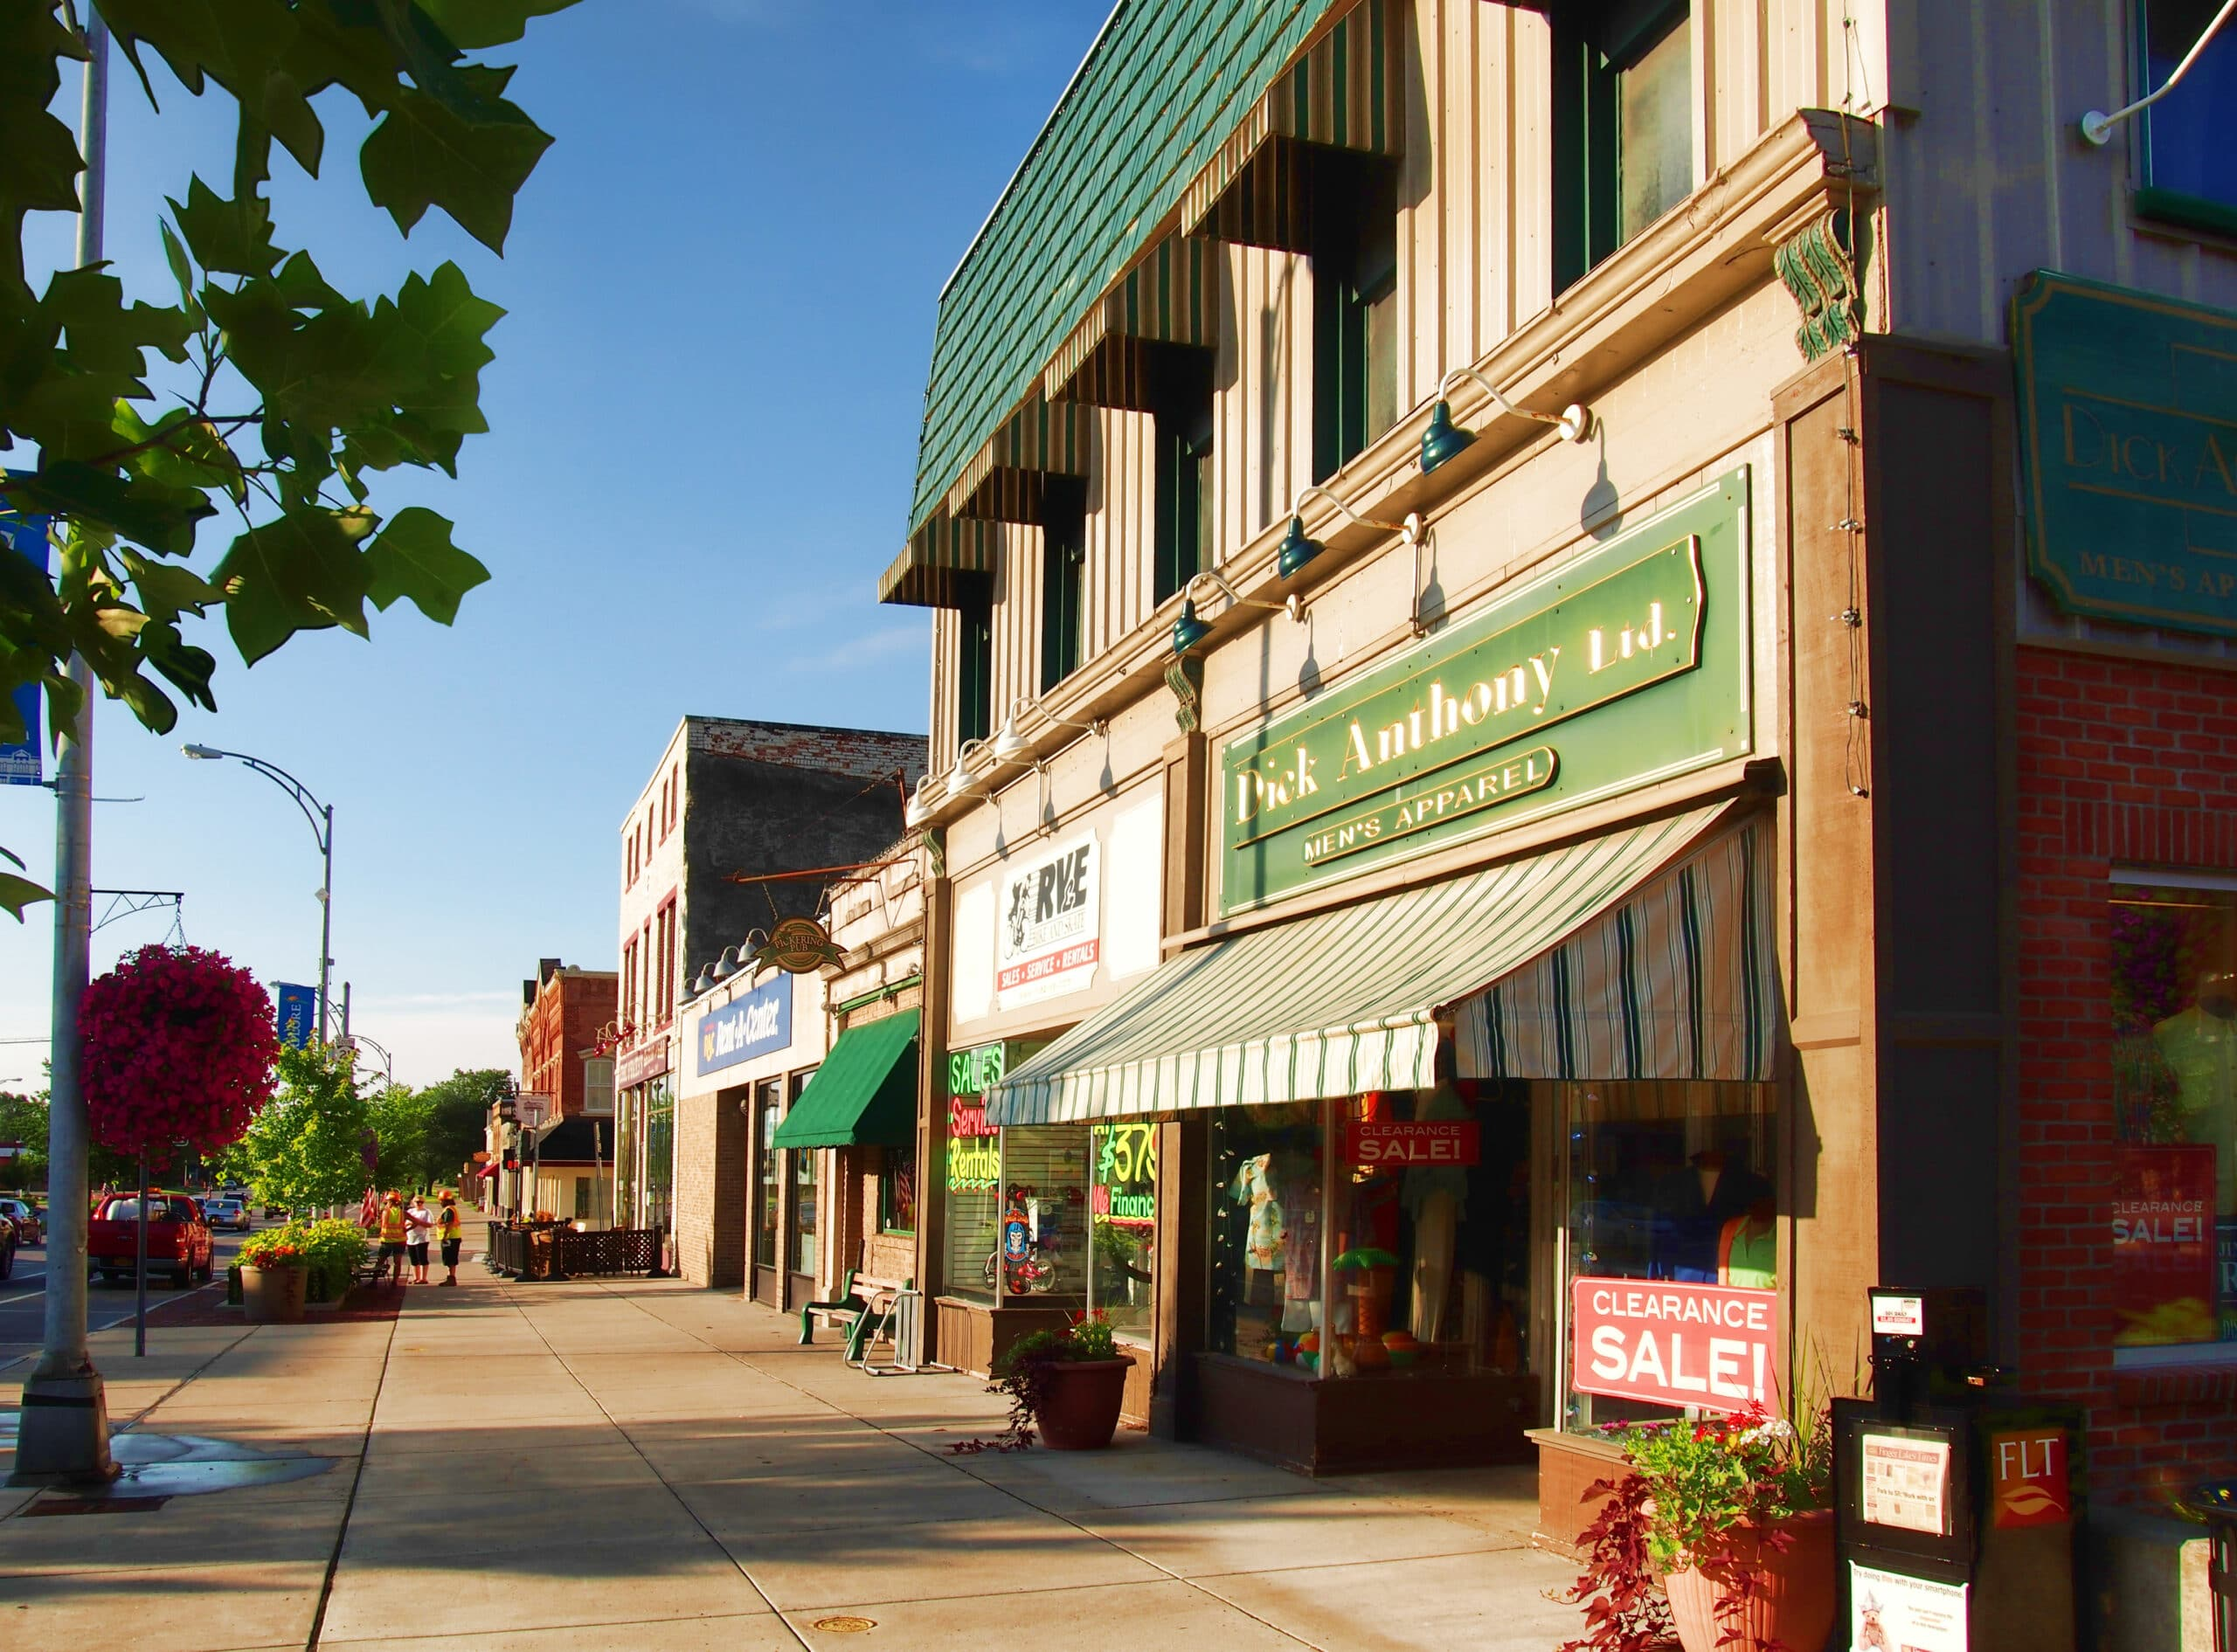 Canandaigua , New York, USA. July 11, 2017. South Main Street in downtown Canandaigua, New York on the shore of Canandaigua Lake in the Finger Lakes Region of upstate New York